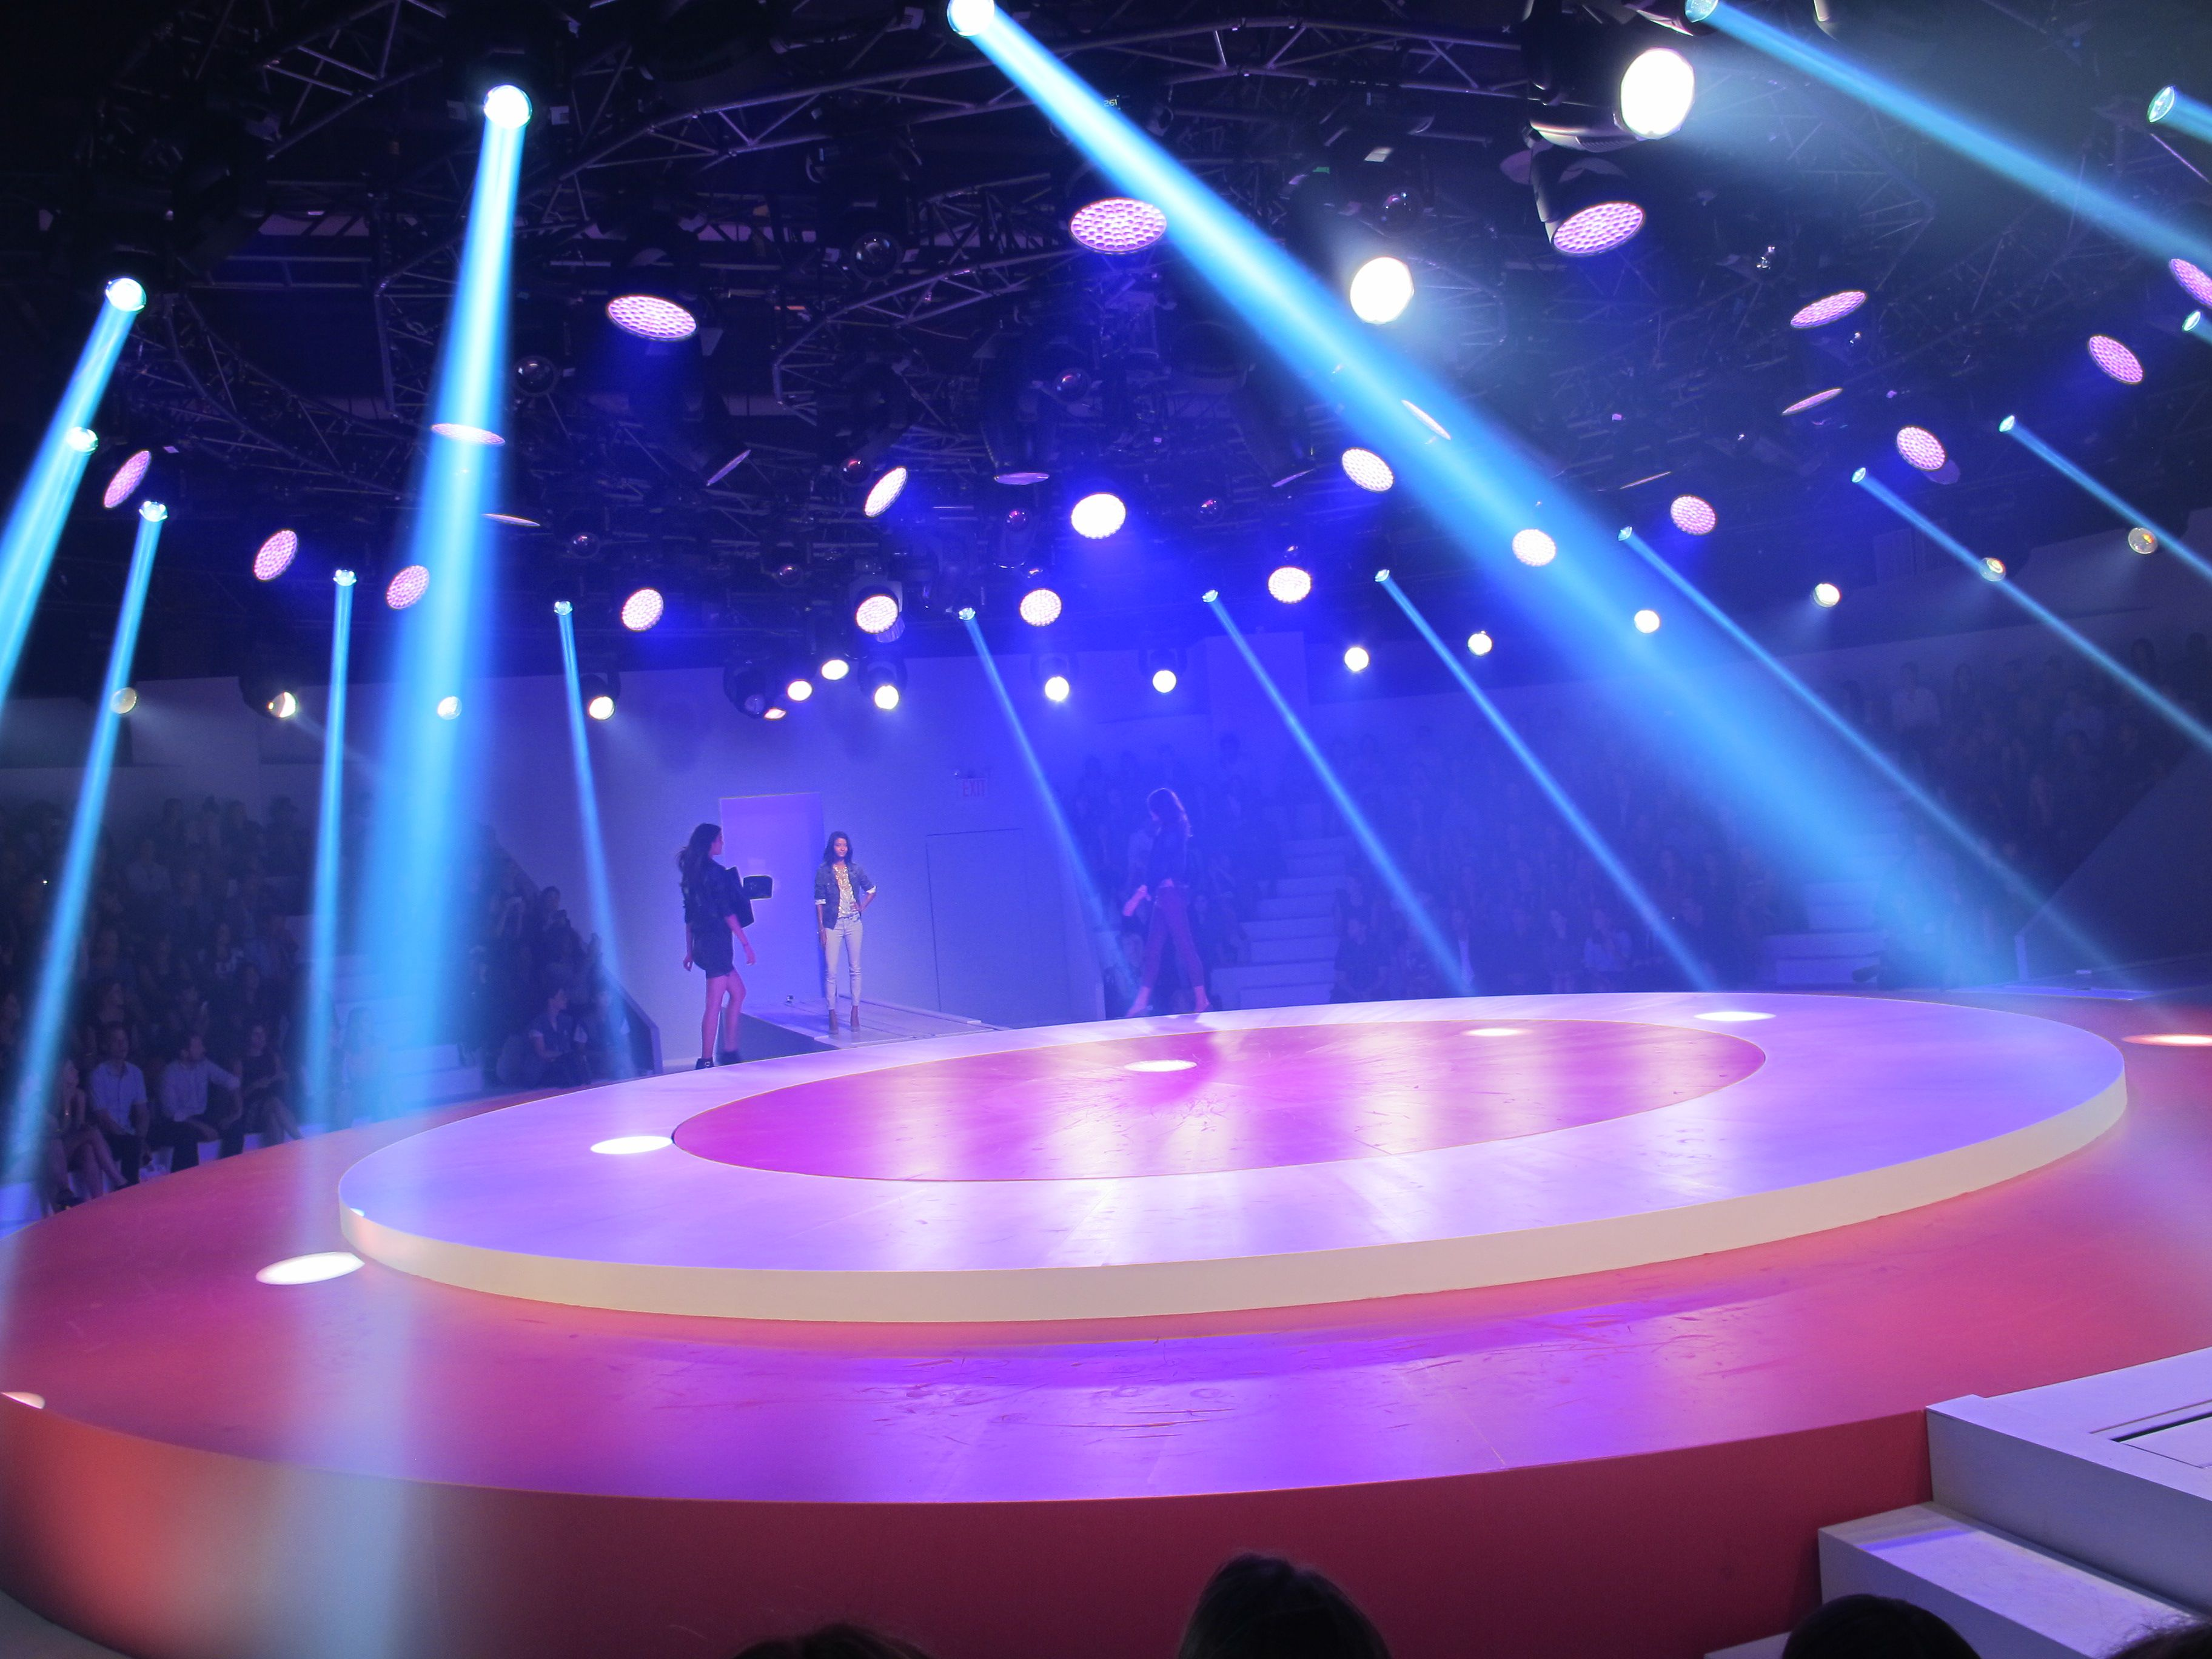 Style Setter: Lighting Fashion Shows CHAUVET Professional 80